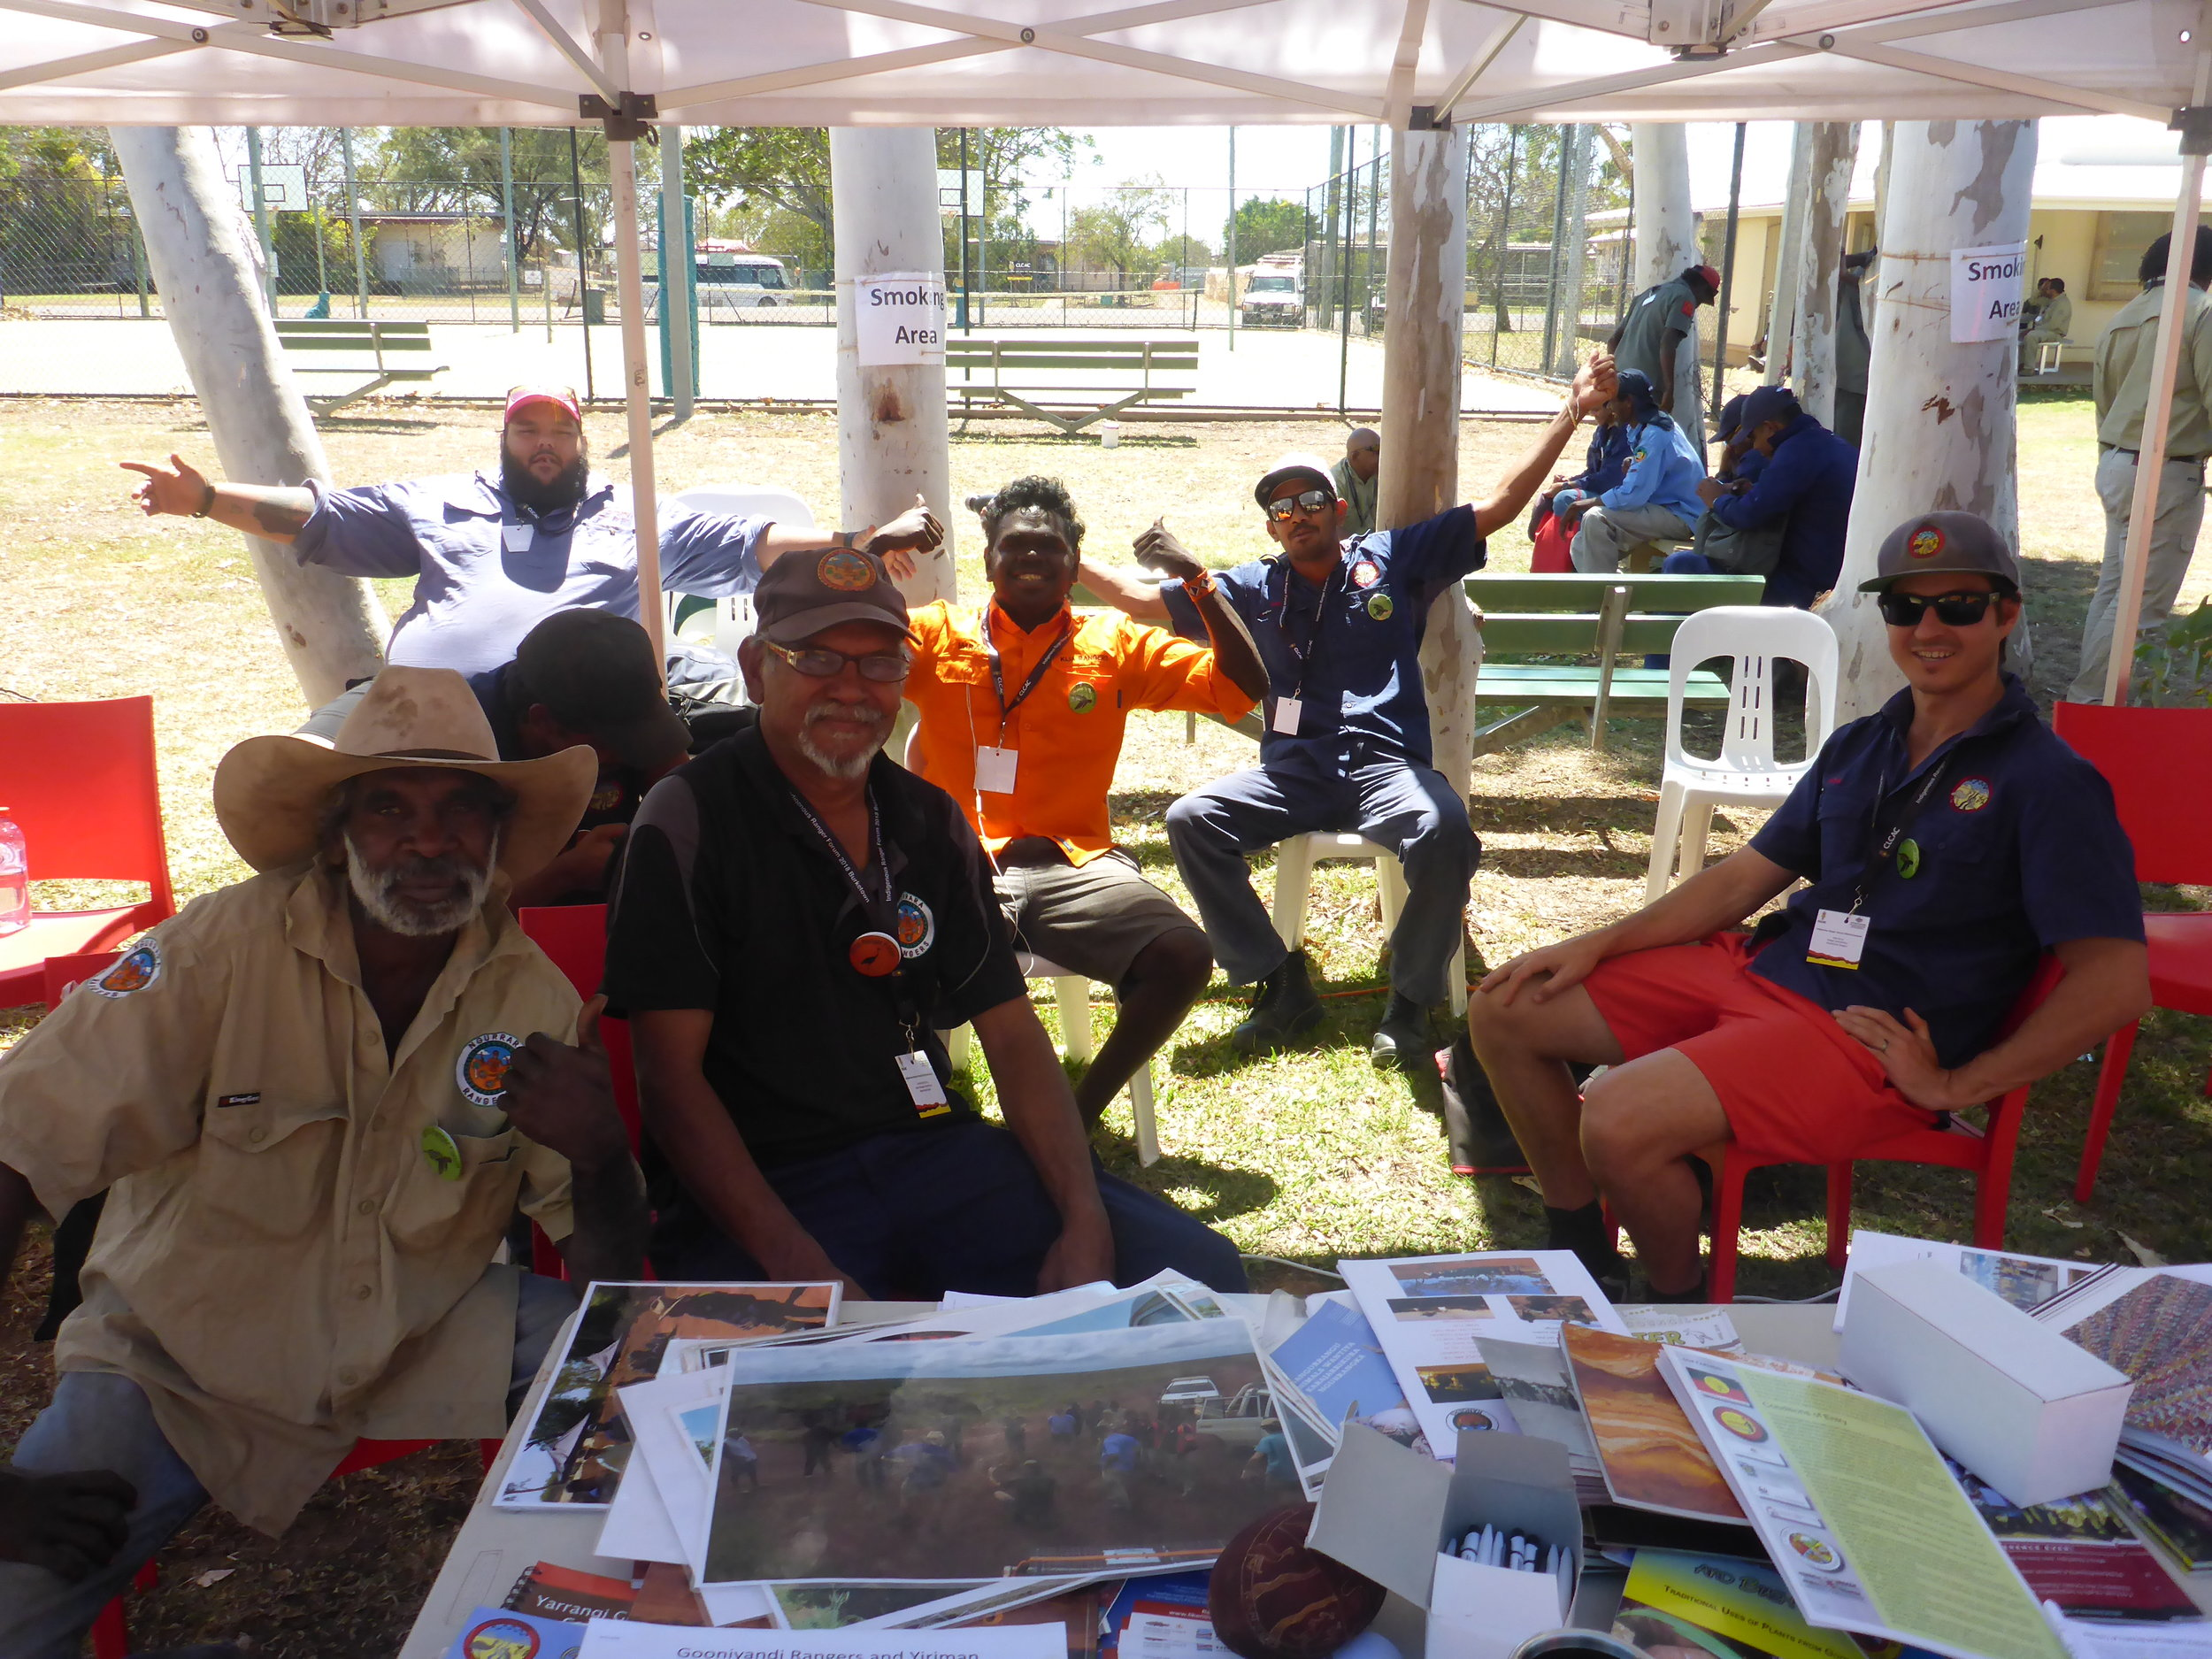 Yanunijarra Aboriginal Corporation Fitzroy Crossing